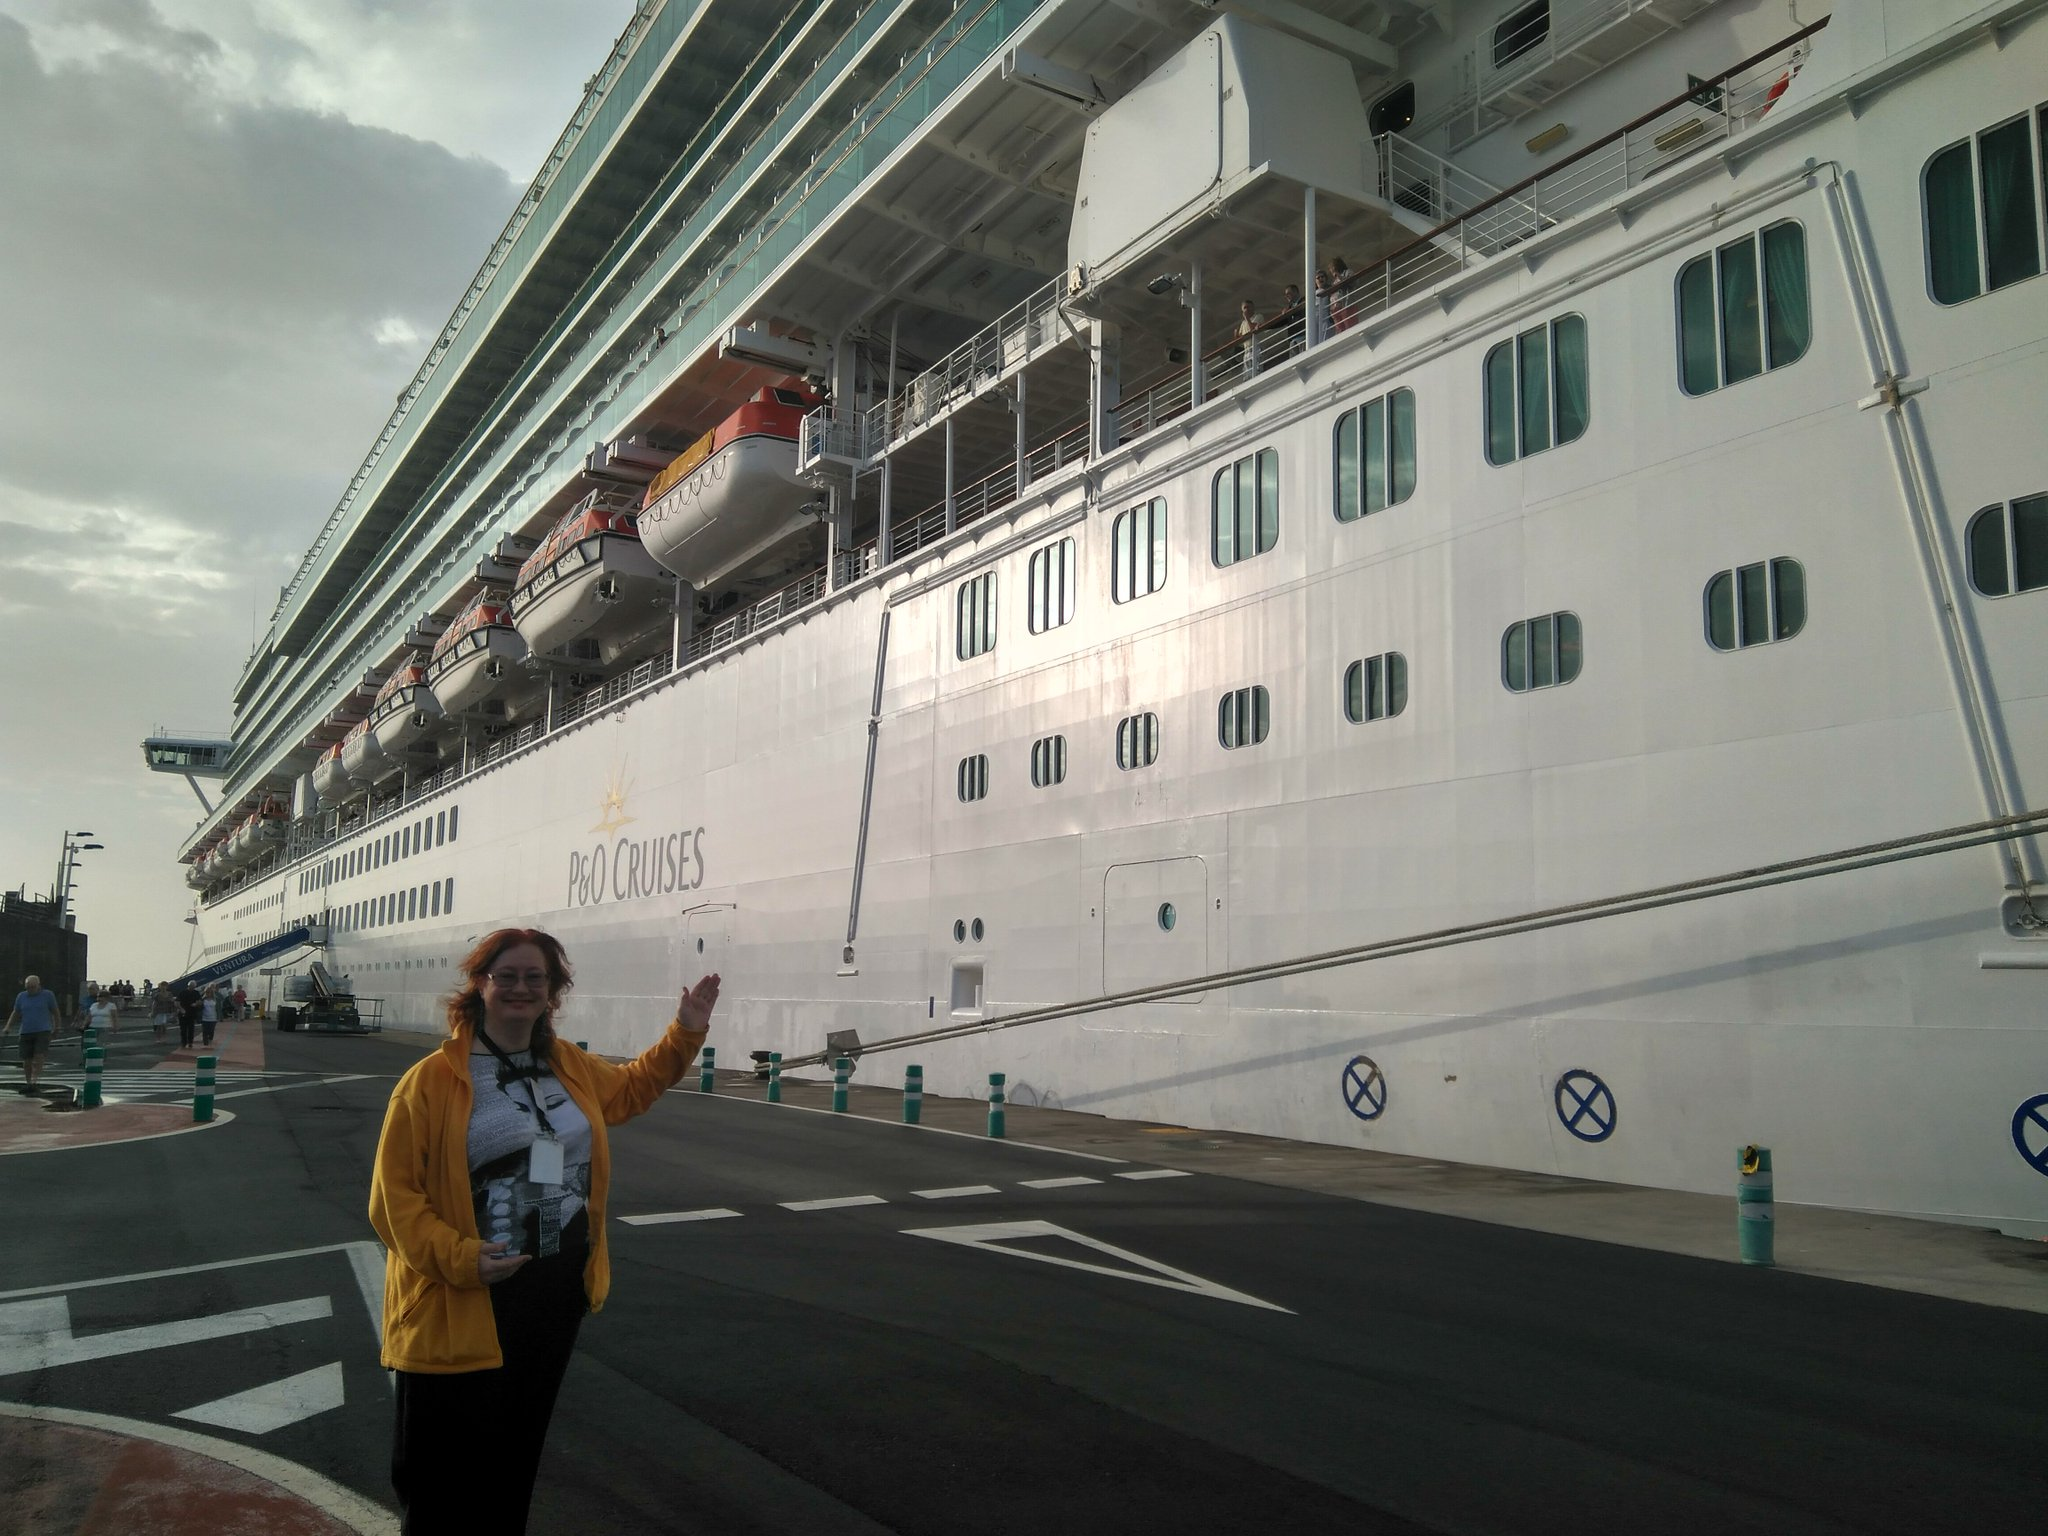 Me and the cruise ship Ventura in the harbour at Santa Cruz de La Palma